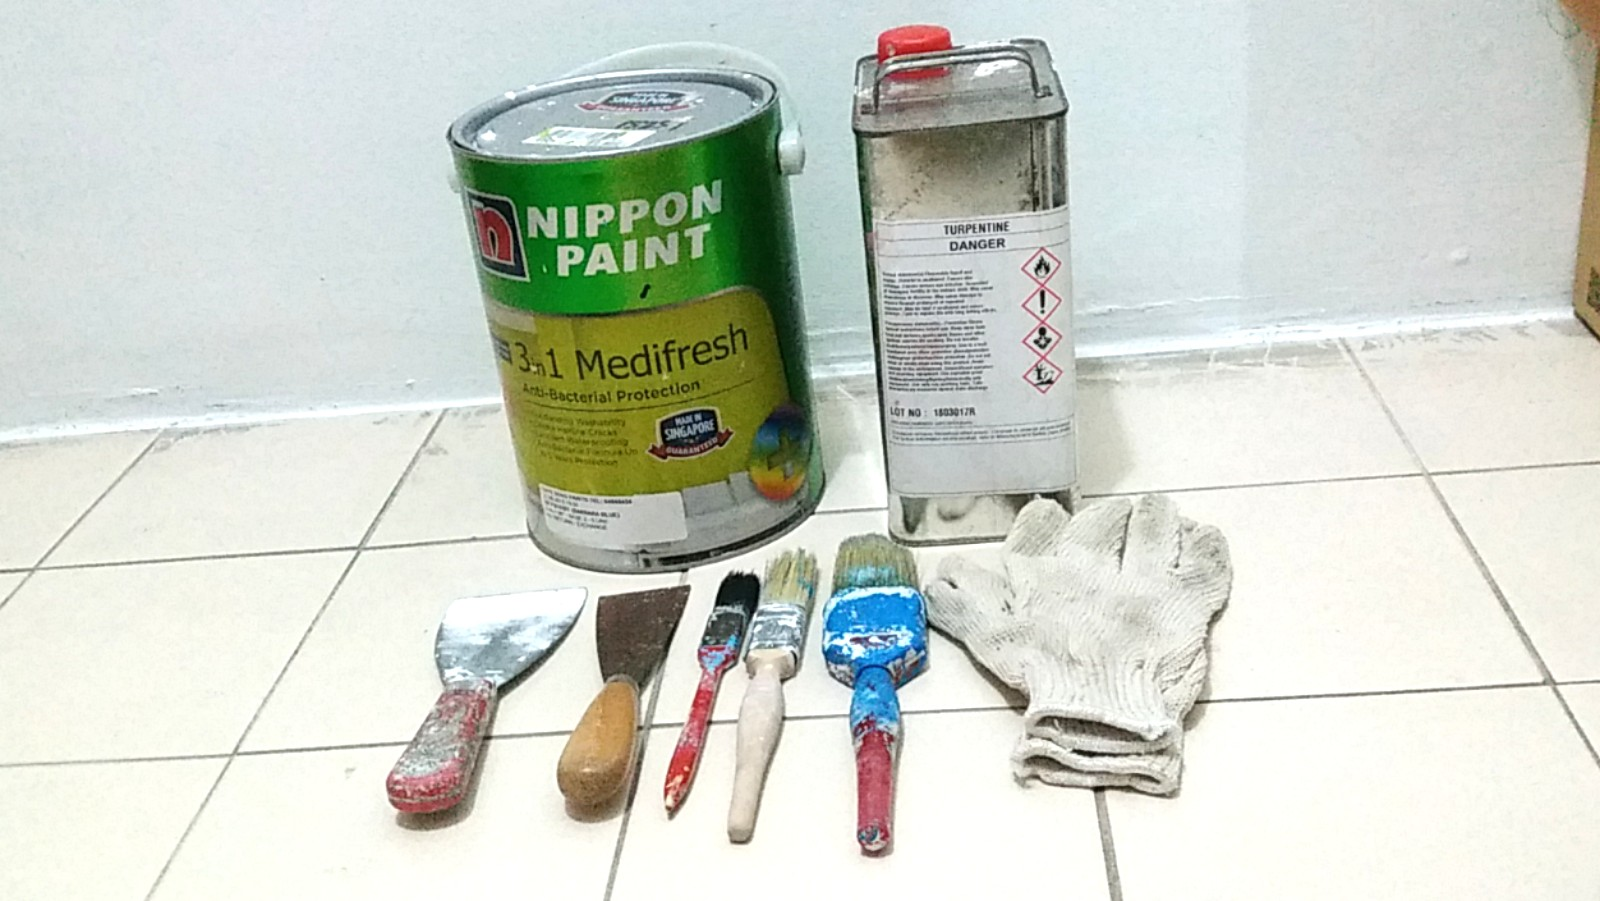 Assorted NIPPON Paint and Painting Accessories